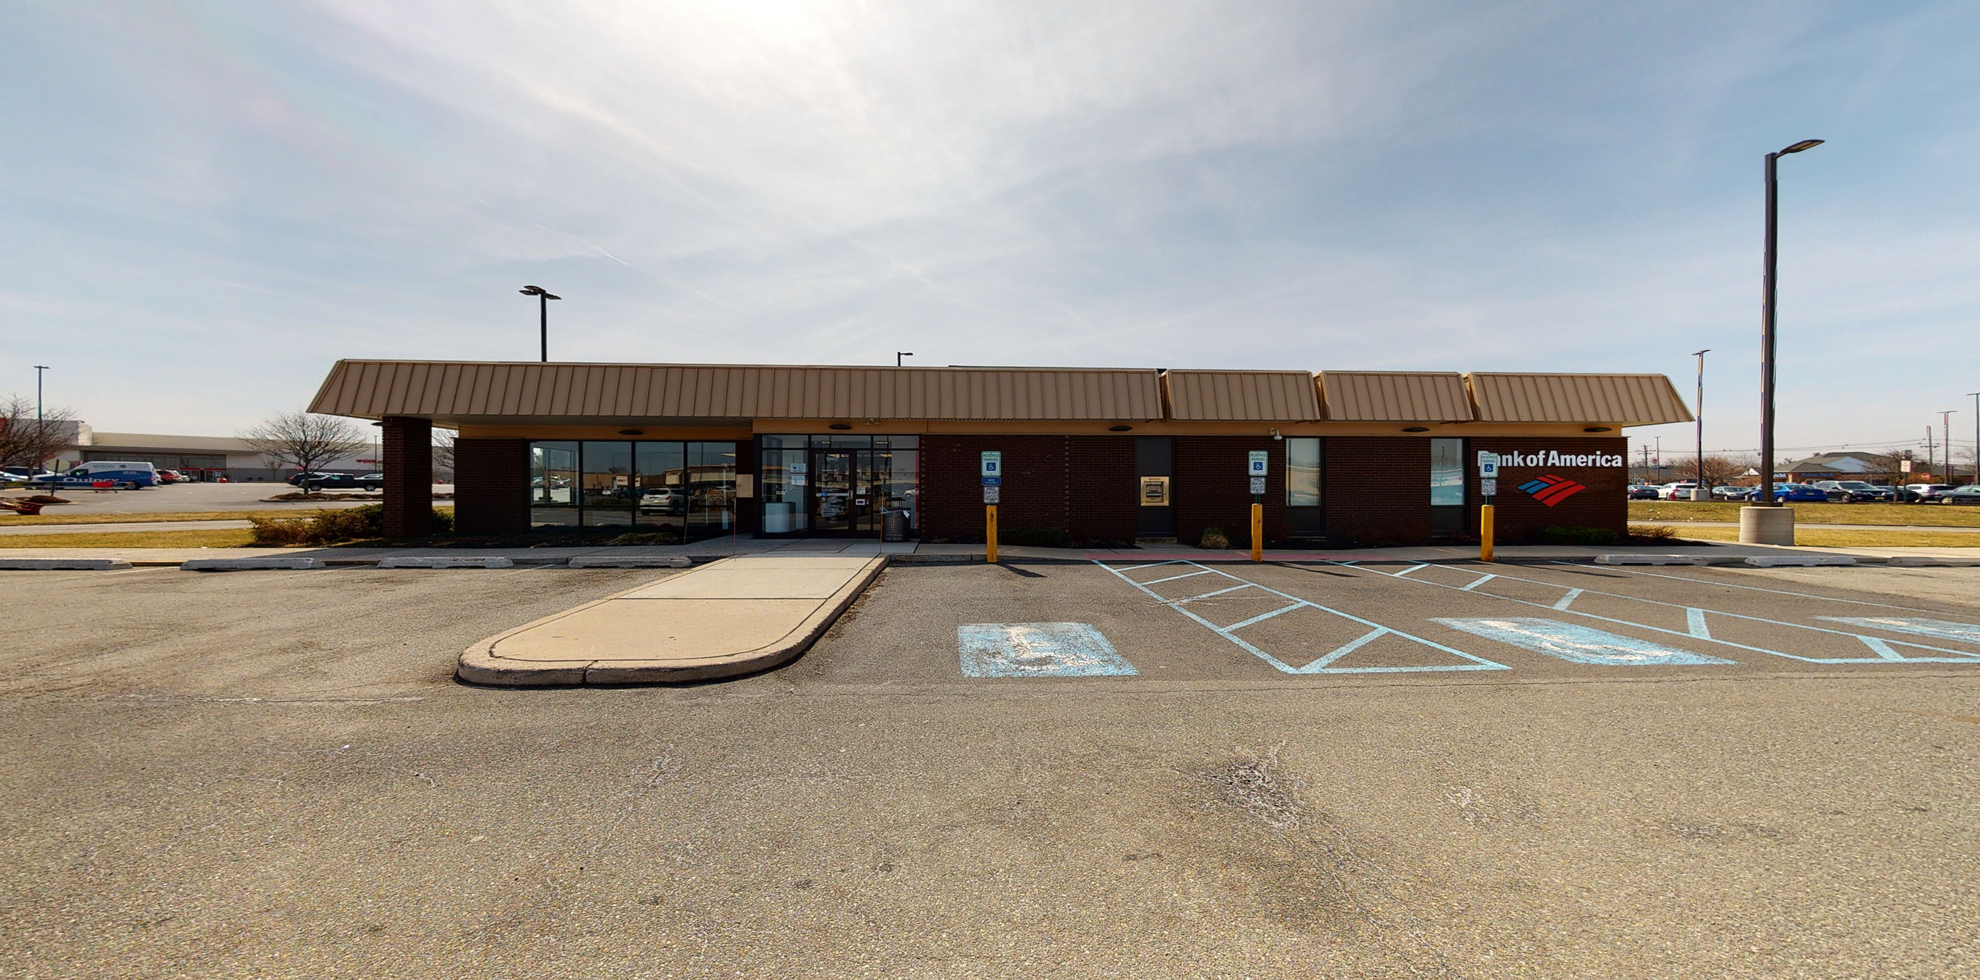 Bank of America financial center with drive-thru ATM | 5001 Stelton Rd, South Plainfield, NJ 07080